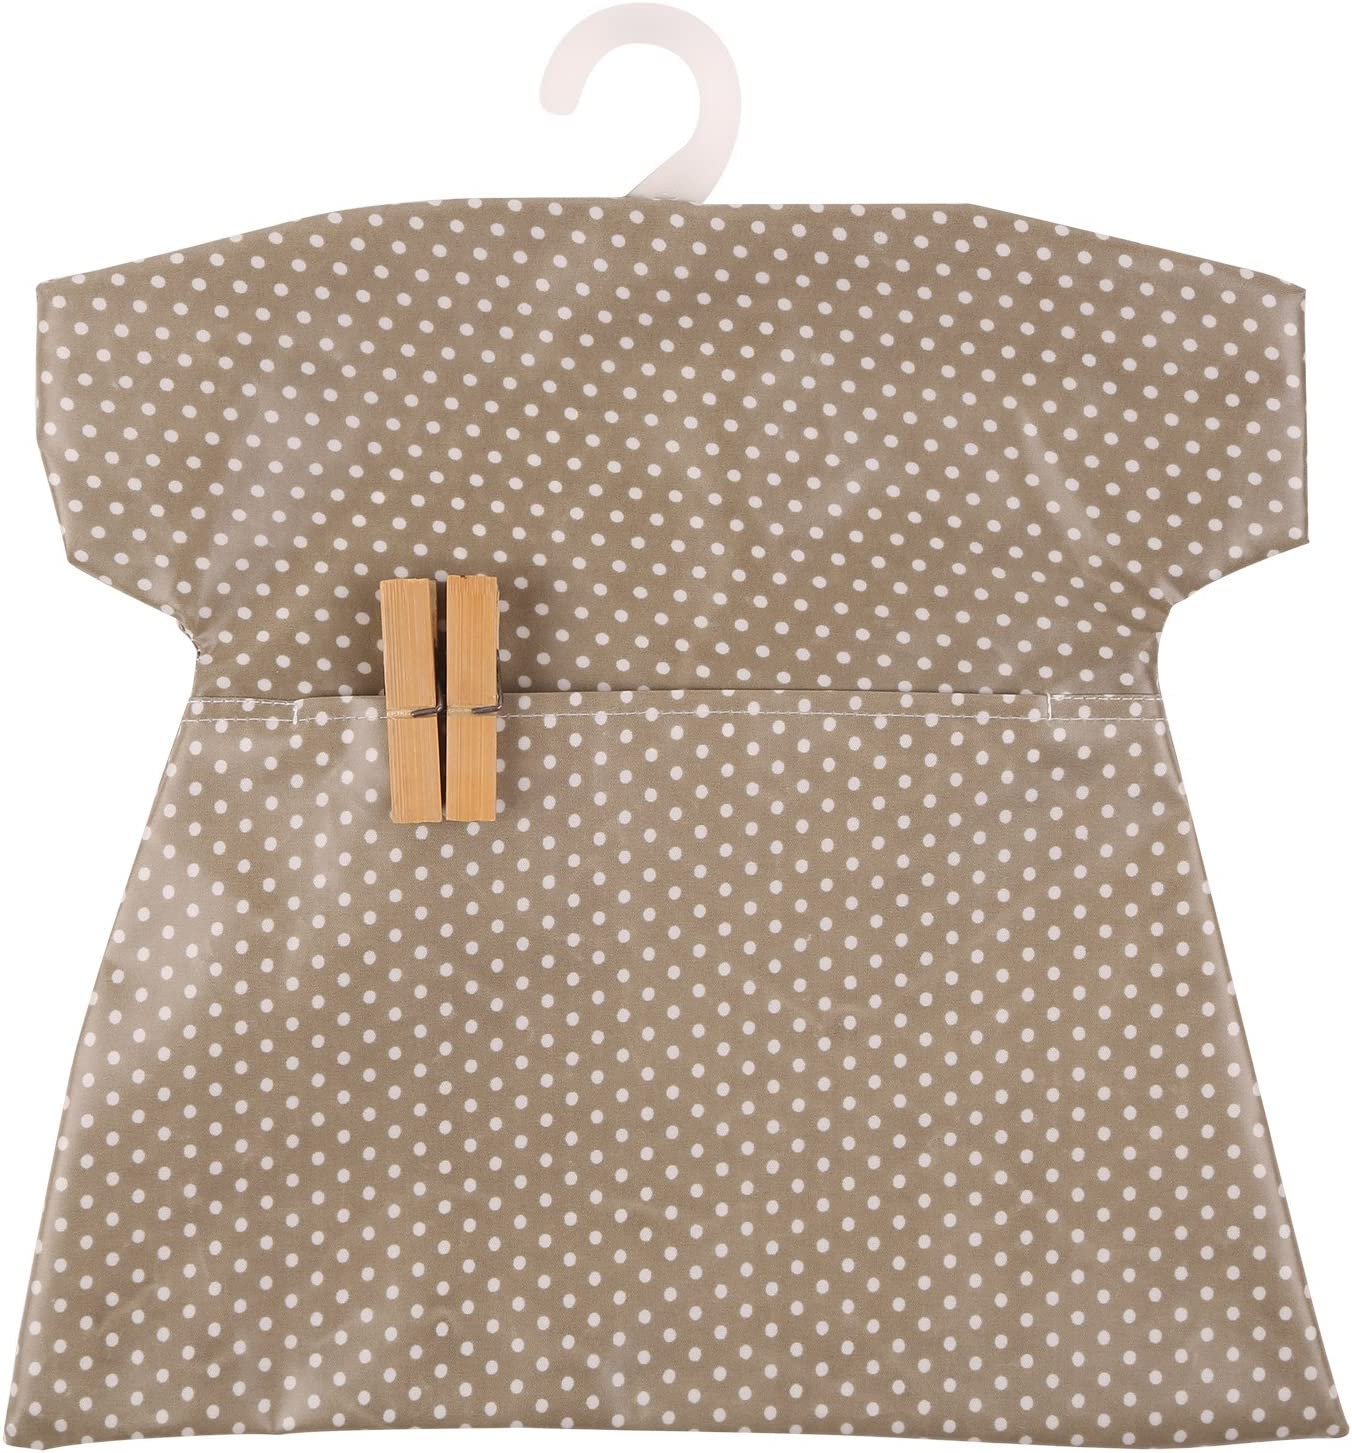 Neoviva Cotton Coated Waterproof Clothespin Bag with Plastic Hanger Canvas Polka Dots Brown